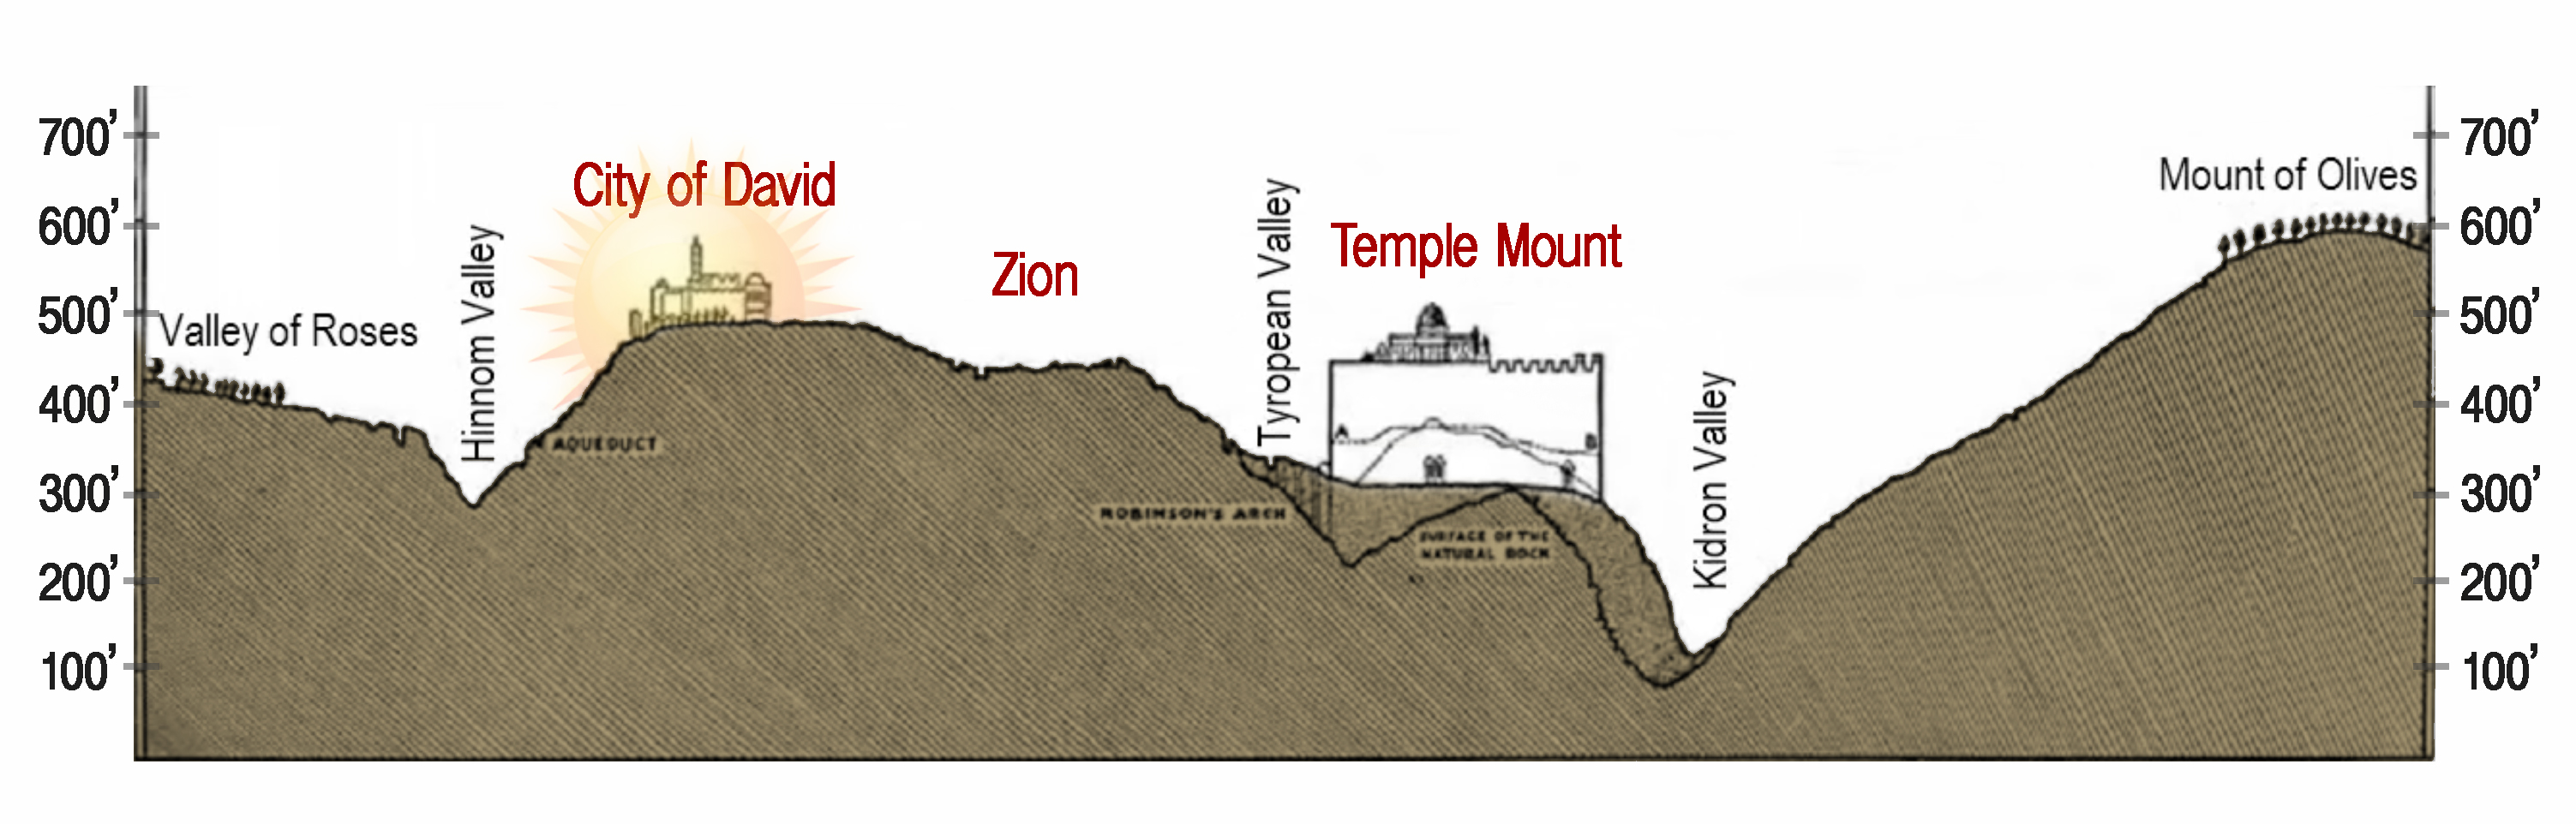 Third Jewish Temple - In The City of David